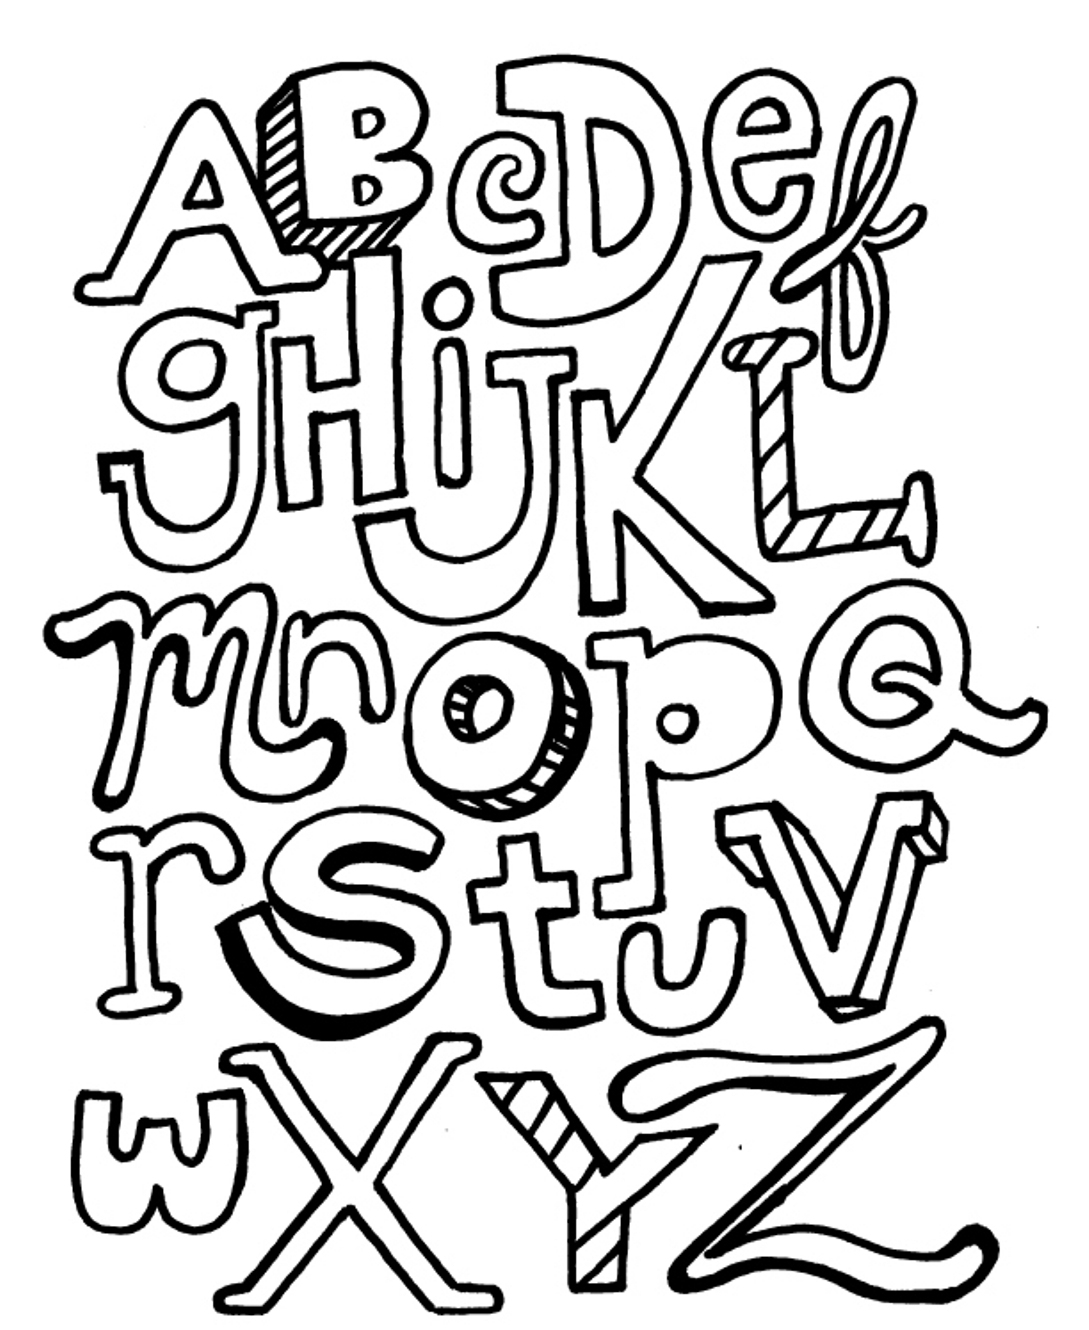 colouring pictures of alphabets block letter coloring pages at getcoloringscom free alphabets of colouring pictures